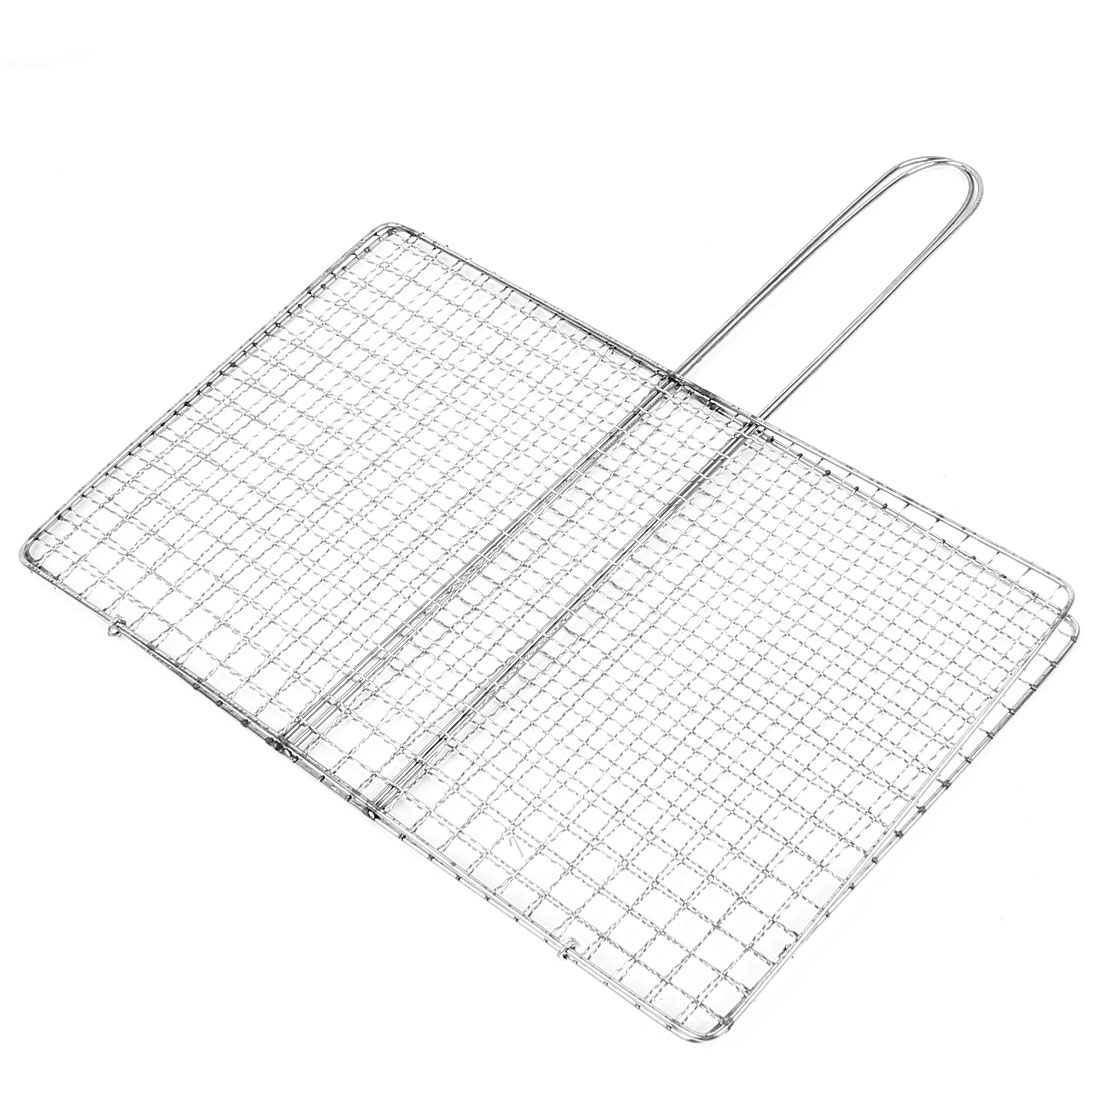 Picnic Metal Square Holes Grill Netting Basket Barbecue Tool 35 x 22cm